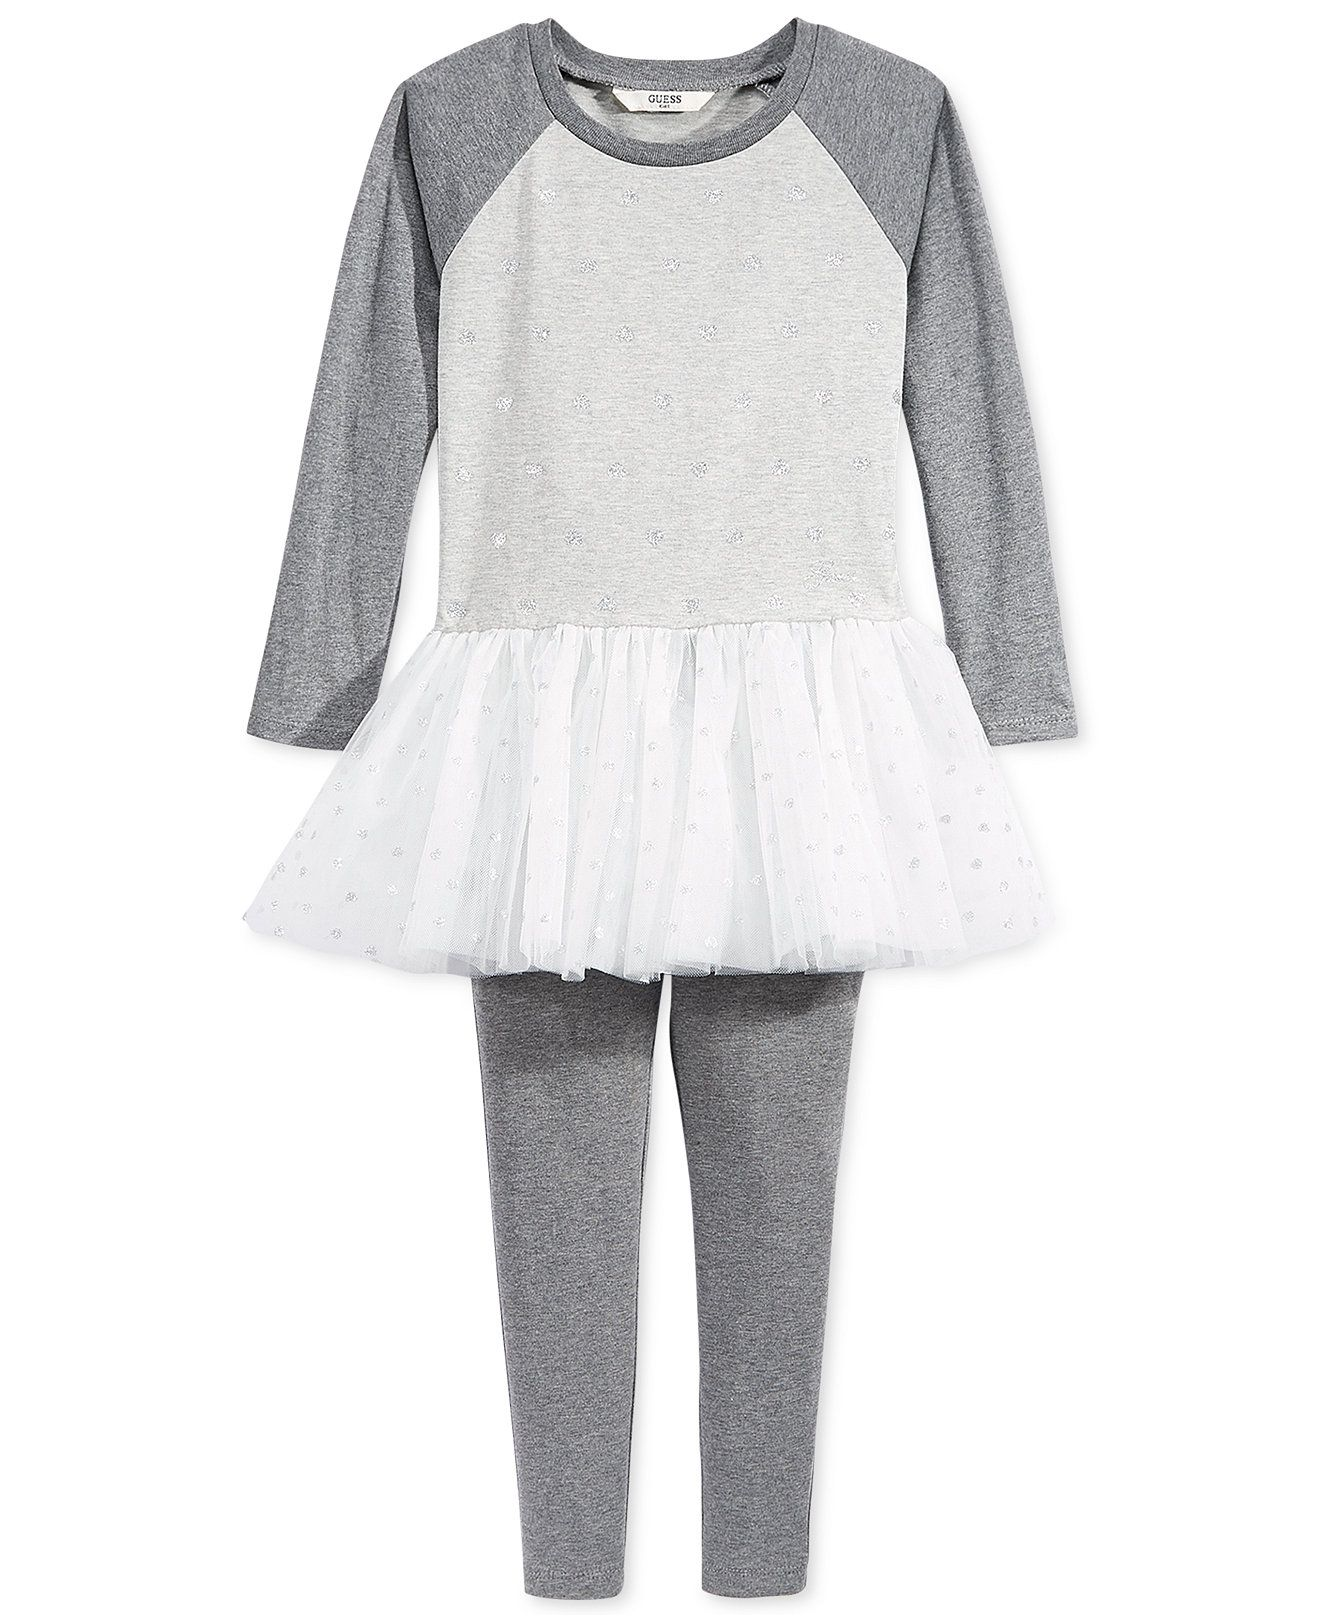 GUESS Little Girls 2 Piece Tutu Dress & Leggings Set Girls 2 6X